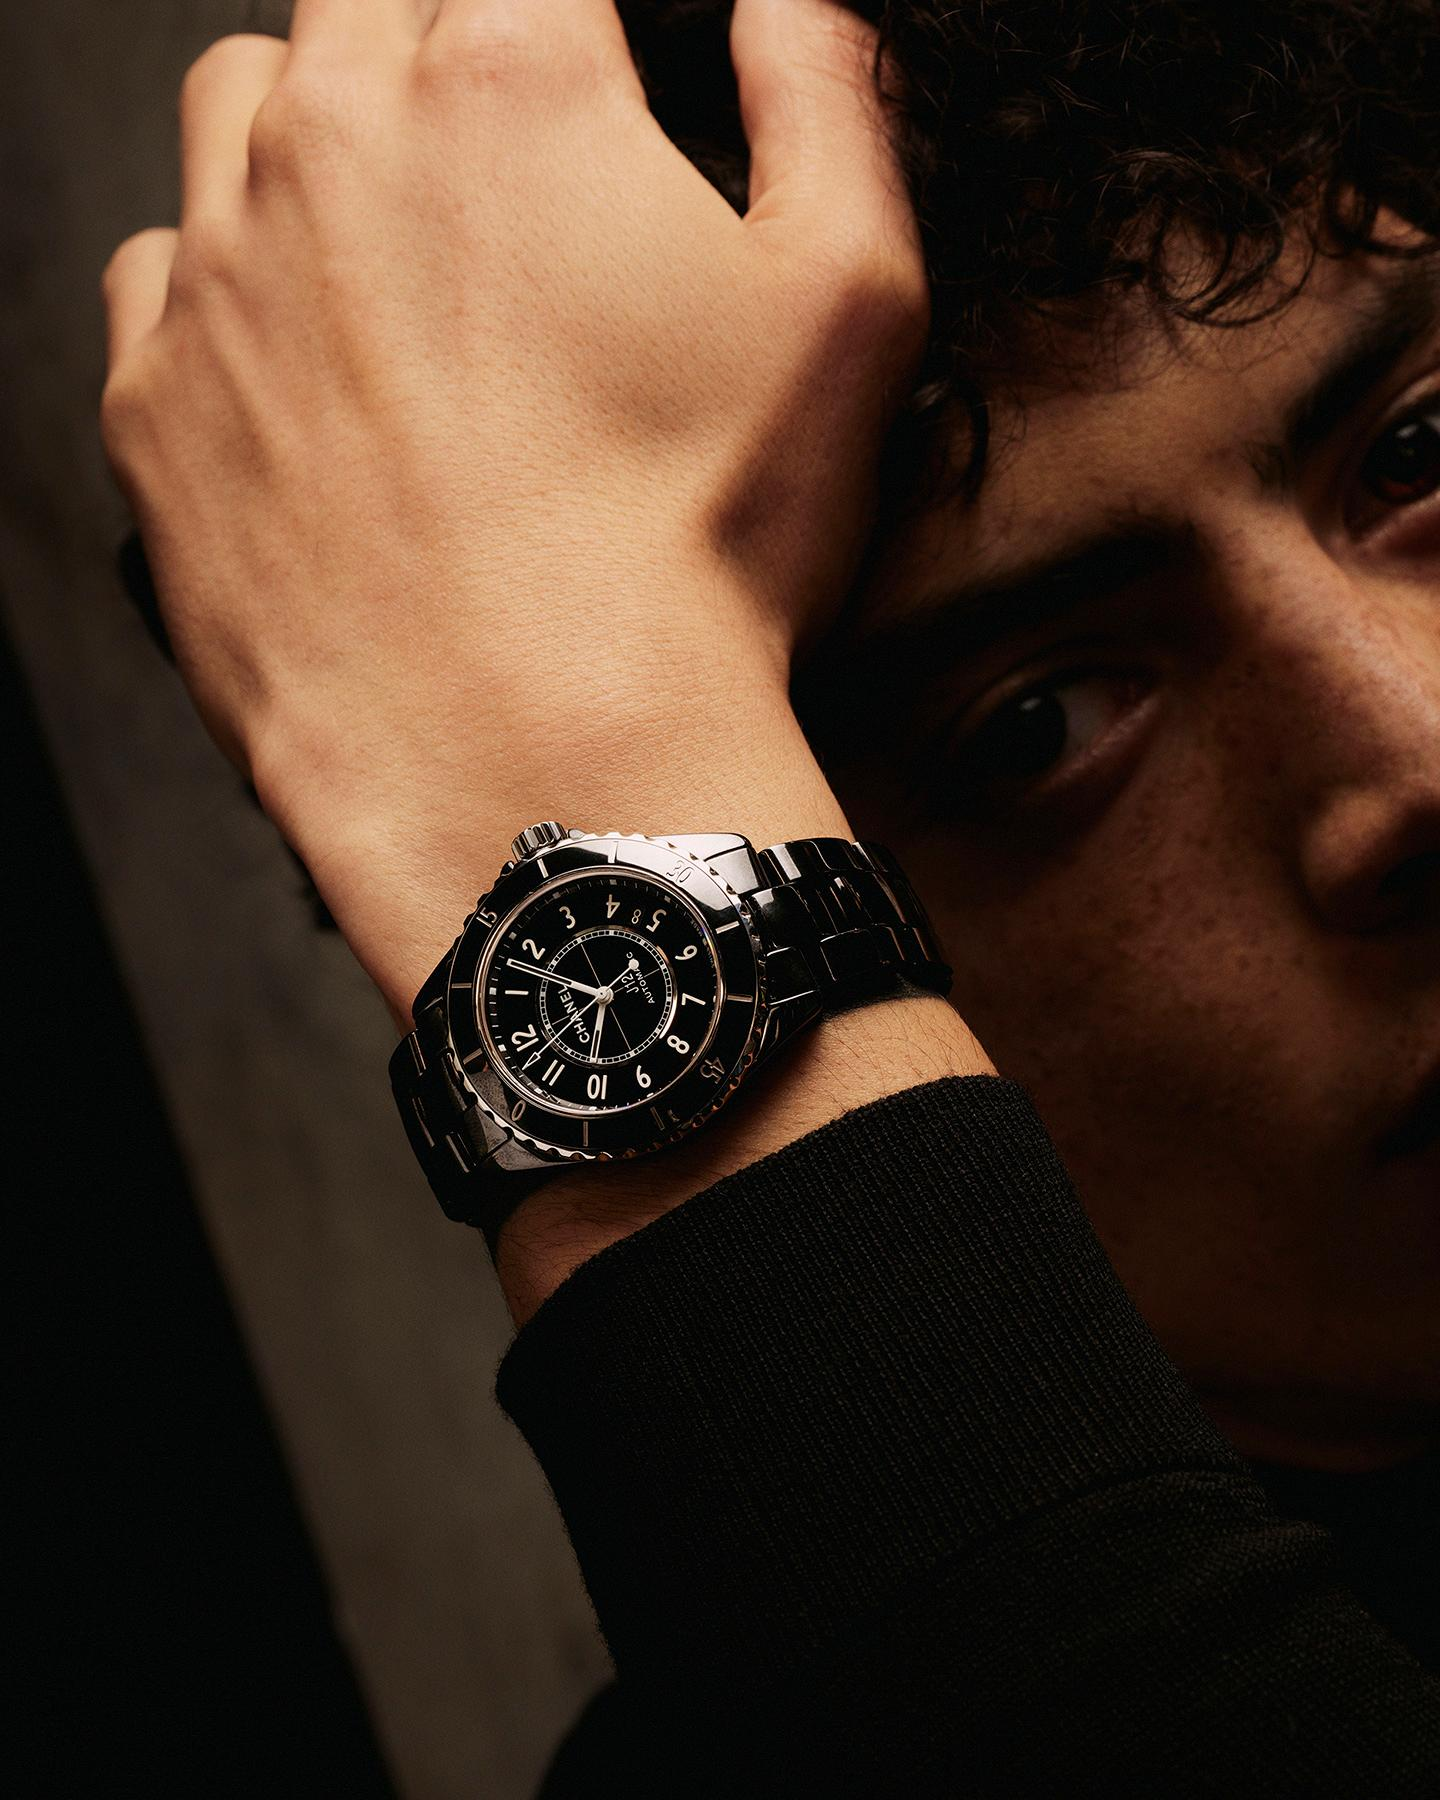 model wearing the J12 Black watch